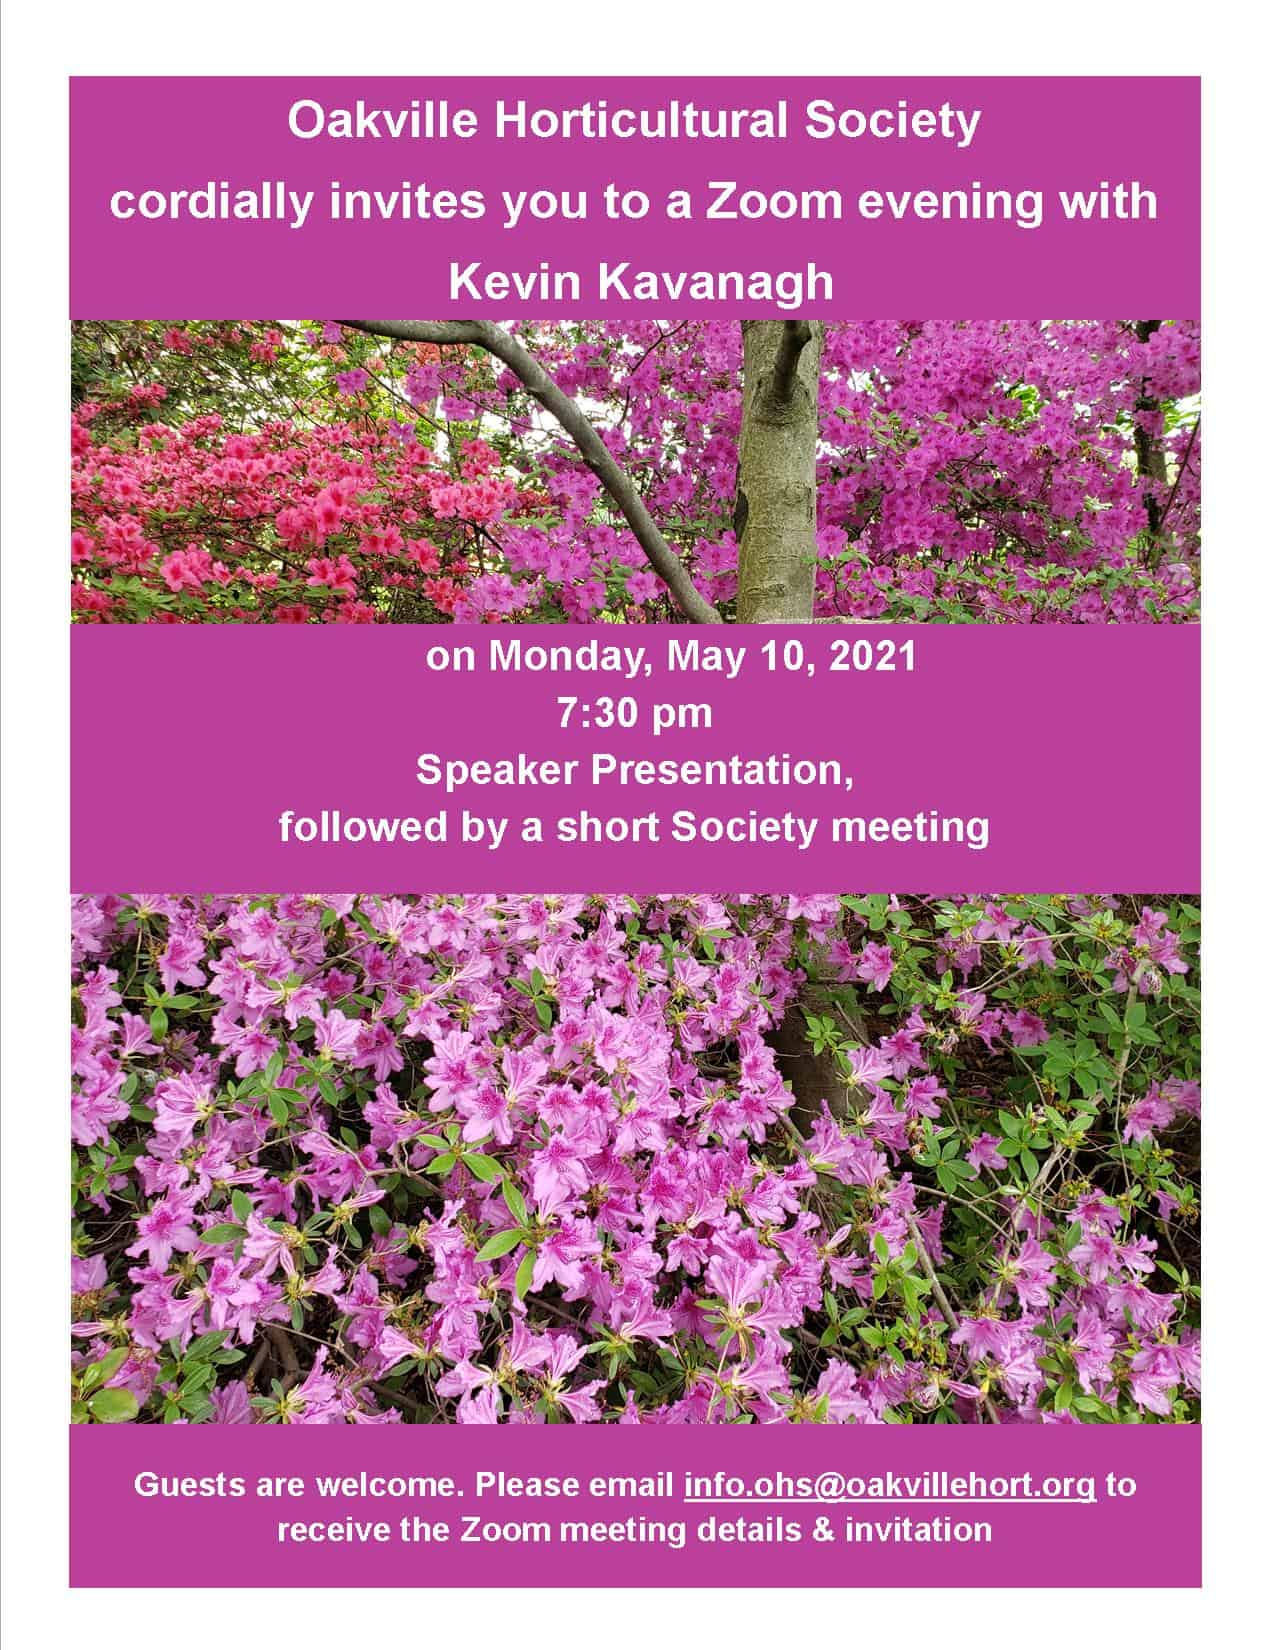 Successful culture of rhododendrons and azaleas in Ontario